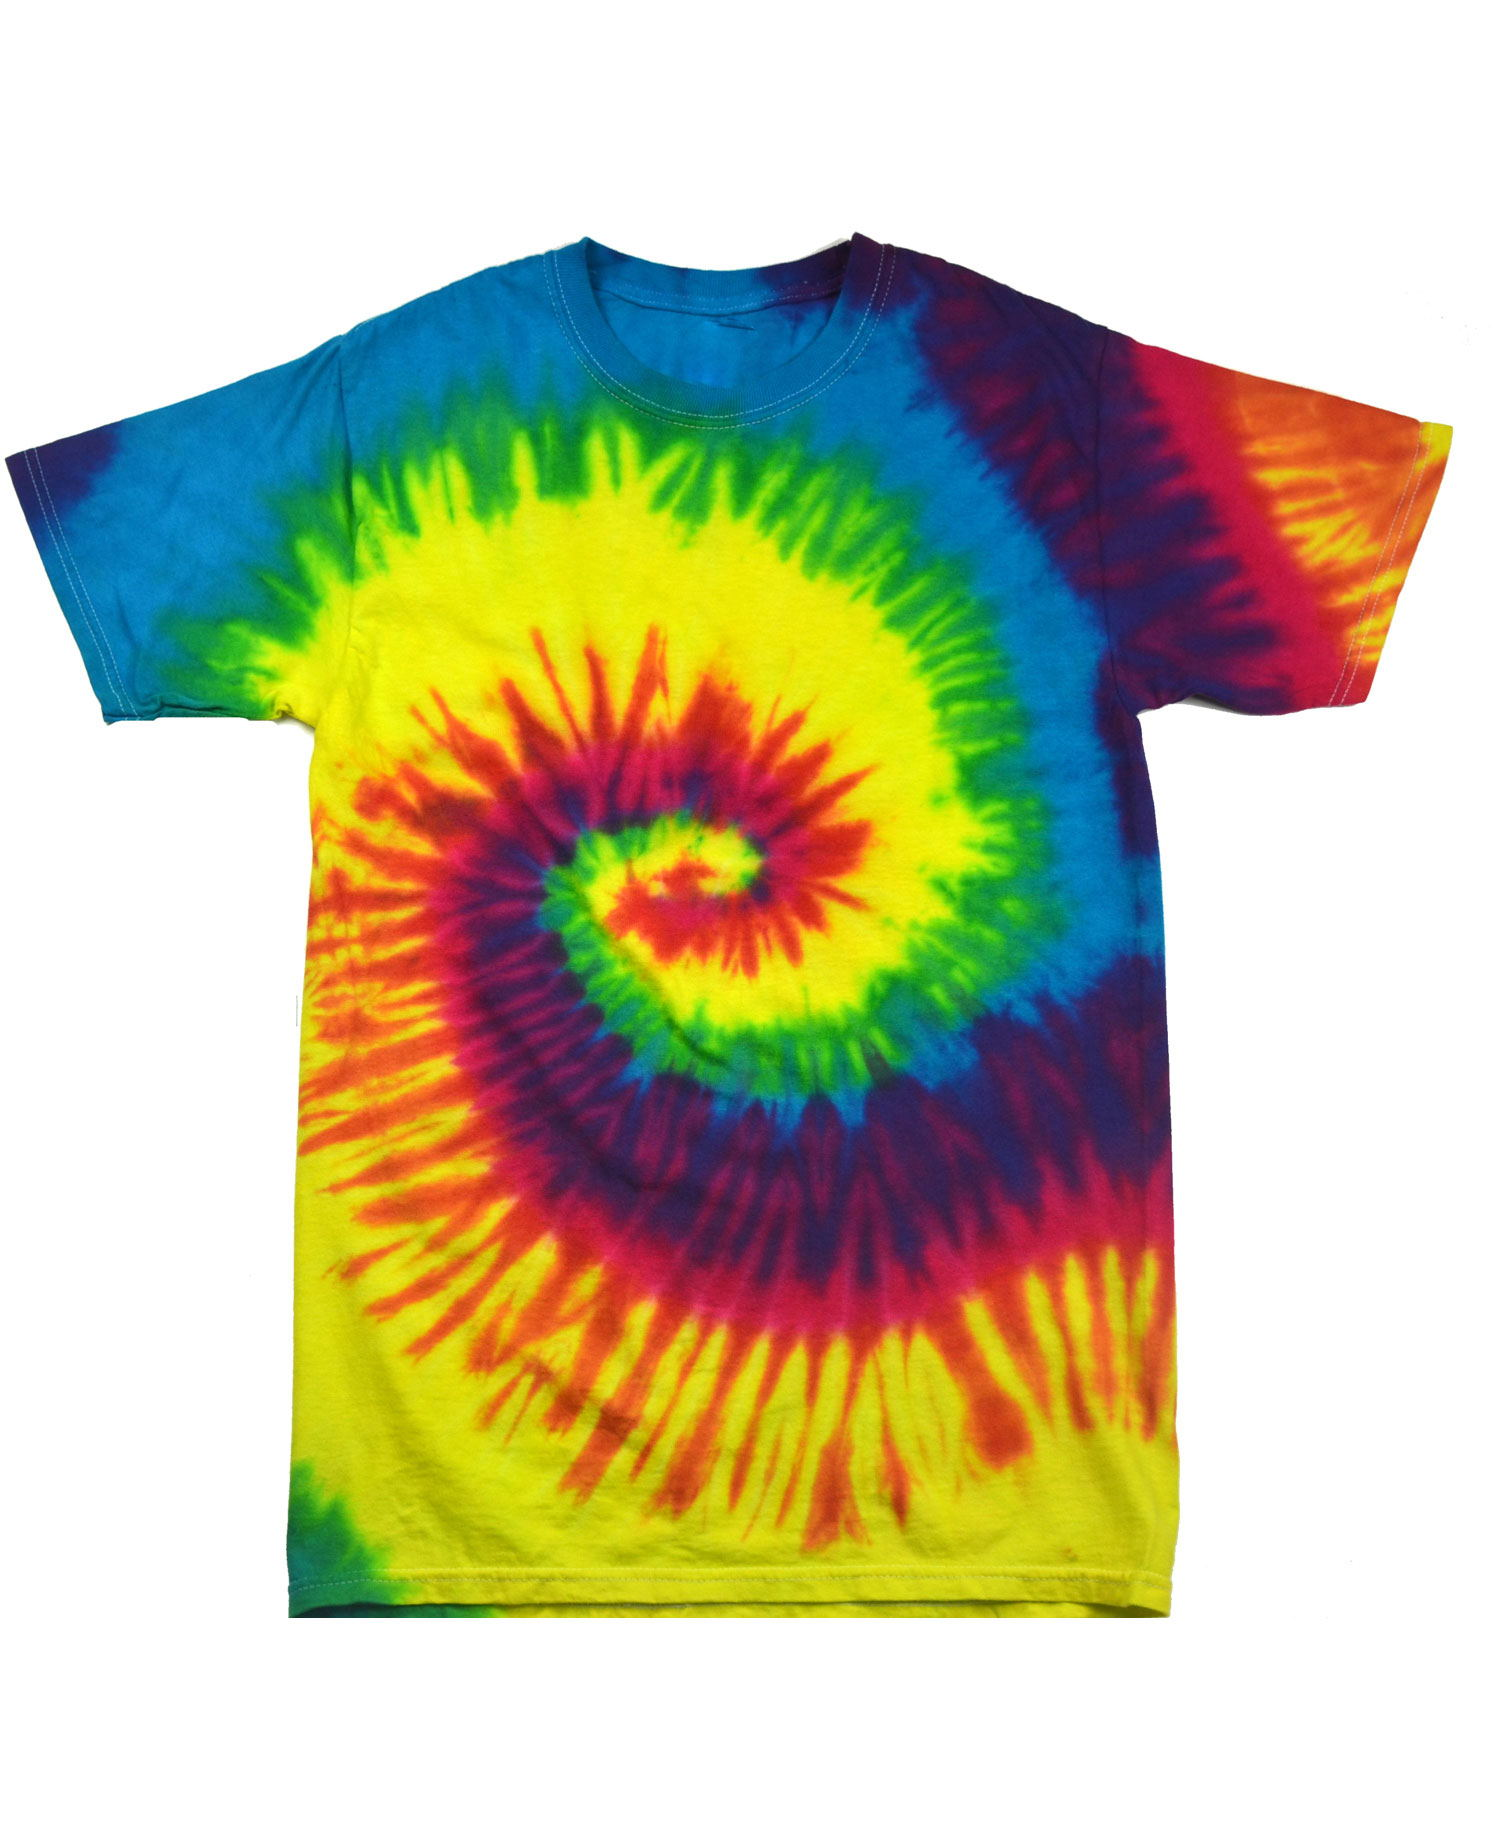 Colortone - T913R Youth Reactive Rainbow Long Sleeve ...